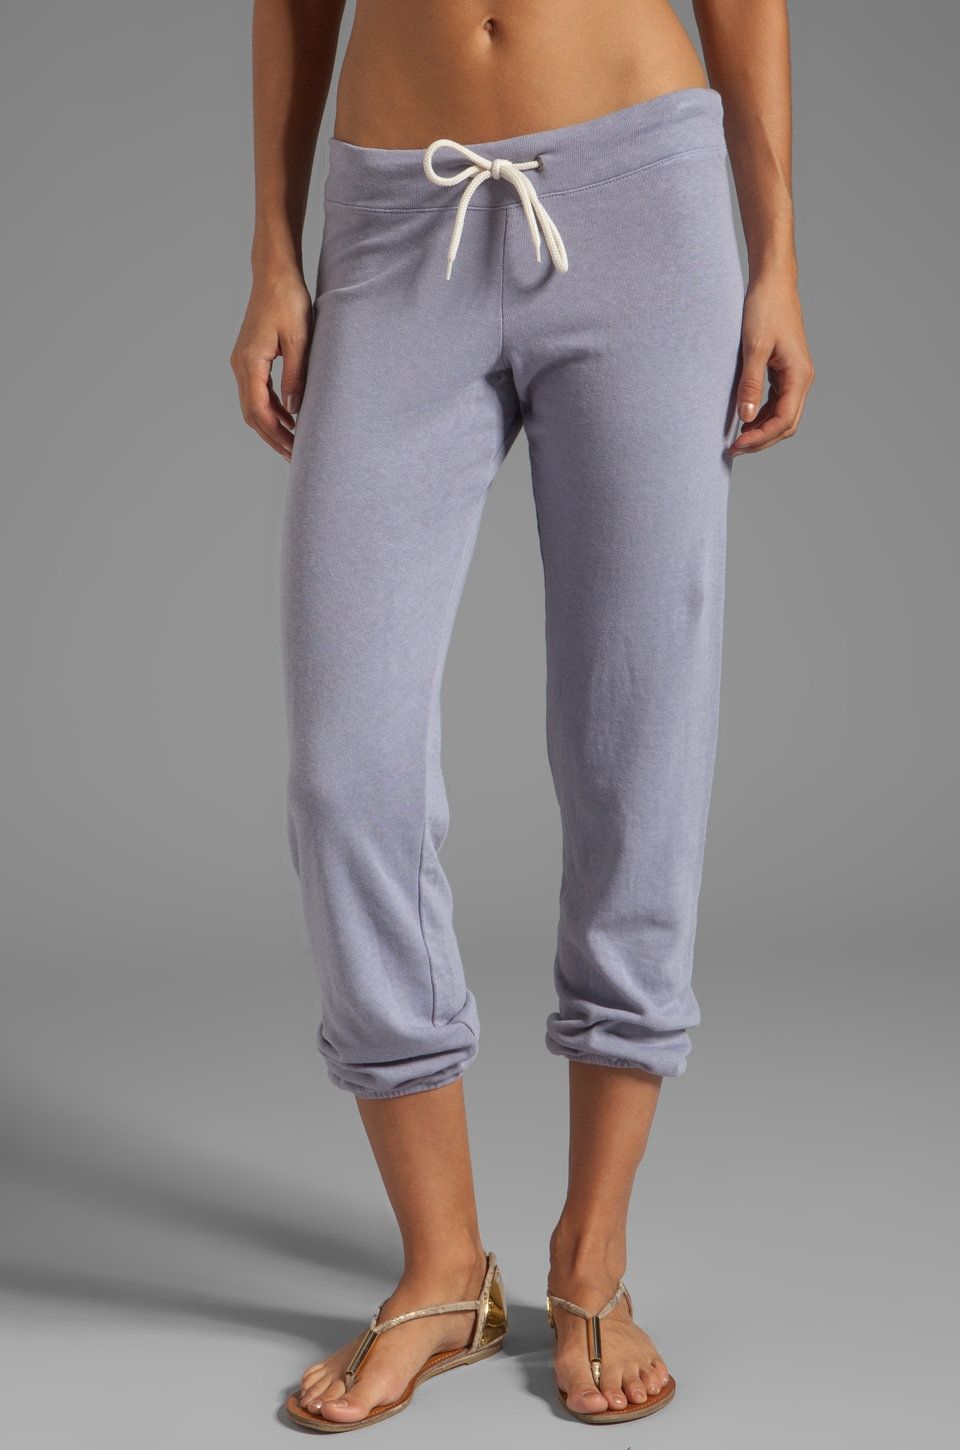 MONROW Vintage White Fleece Sweats in Opal